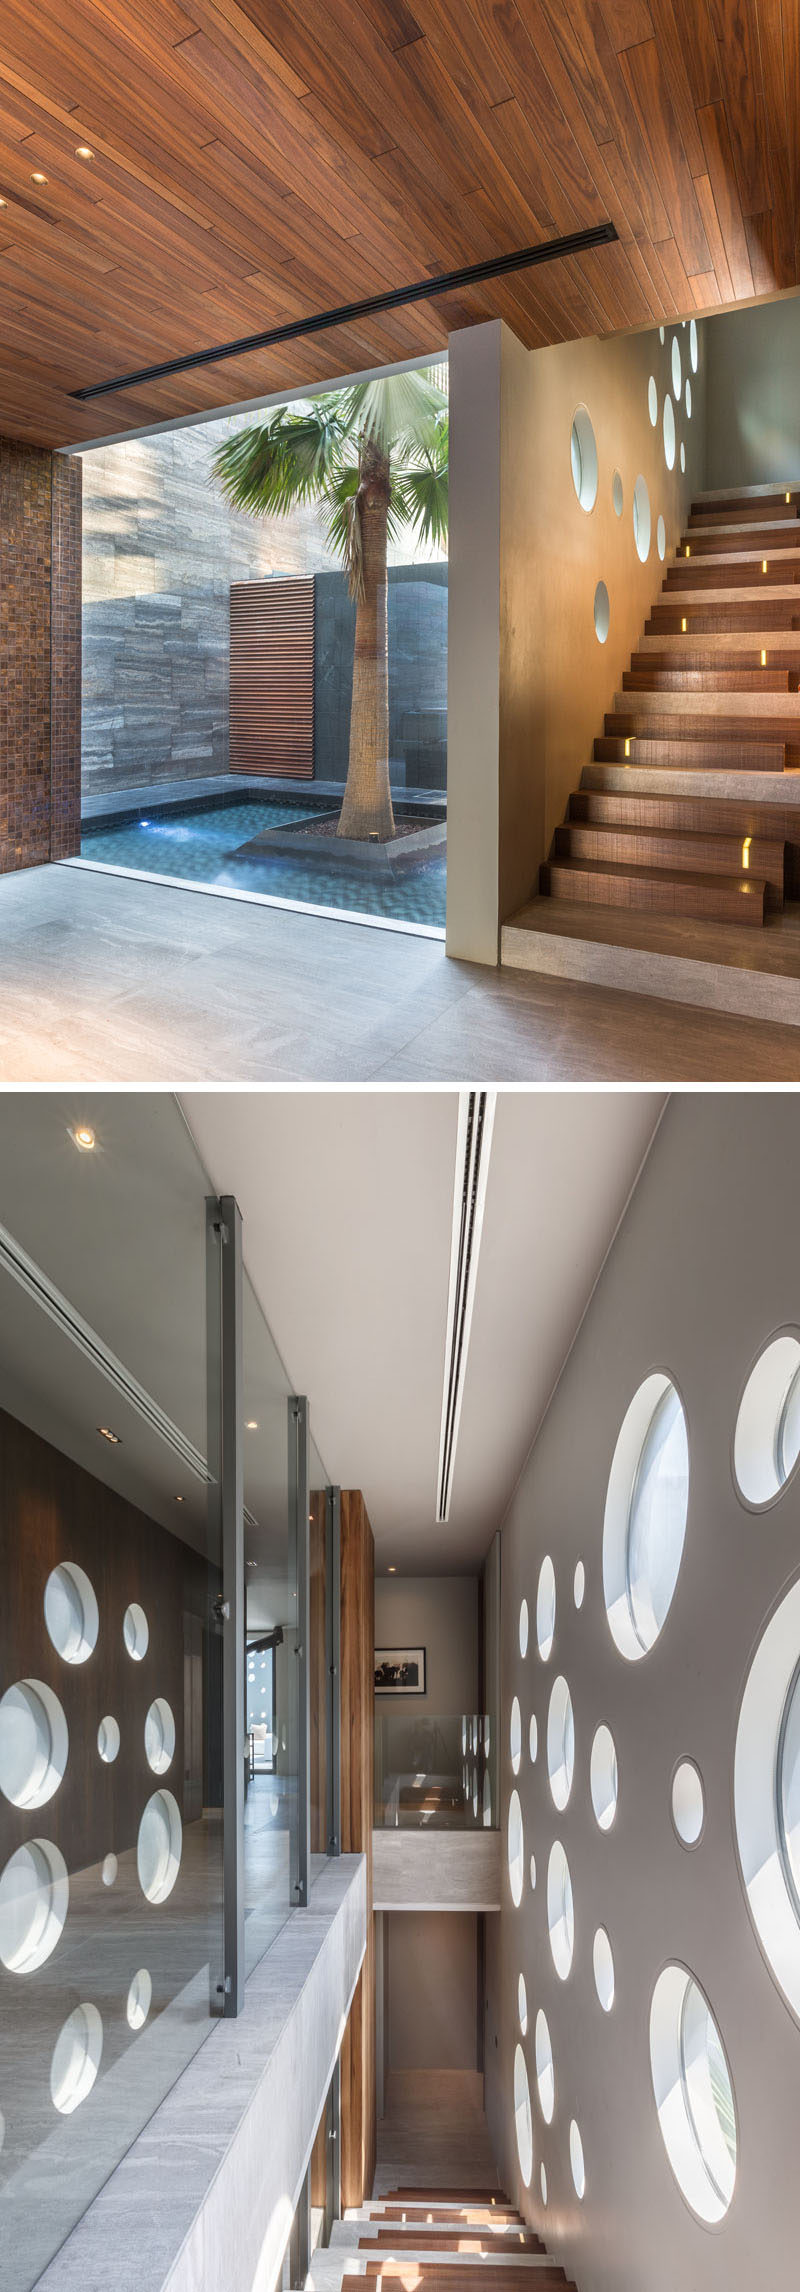 Large circular windows in the wall provide natural sunlight to the staircase.  #CircularWindows #Stairs